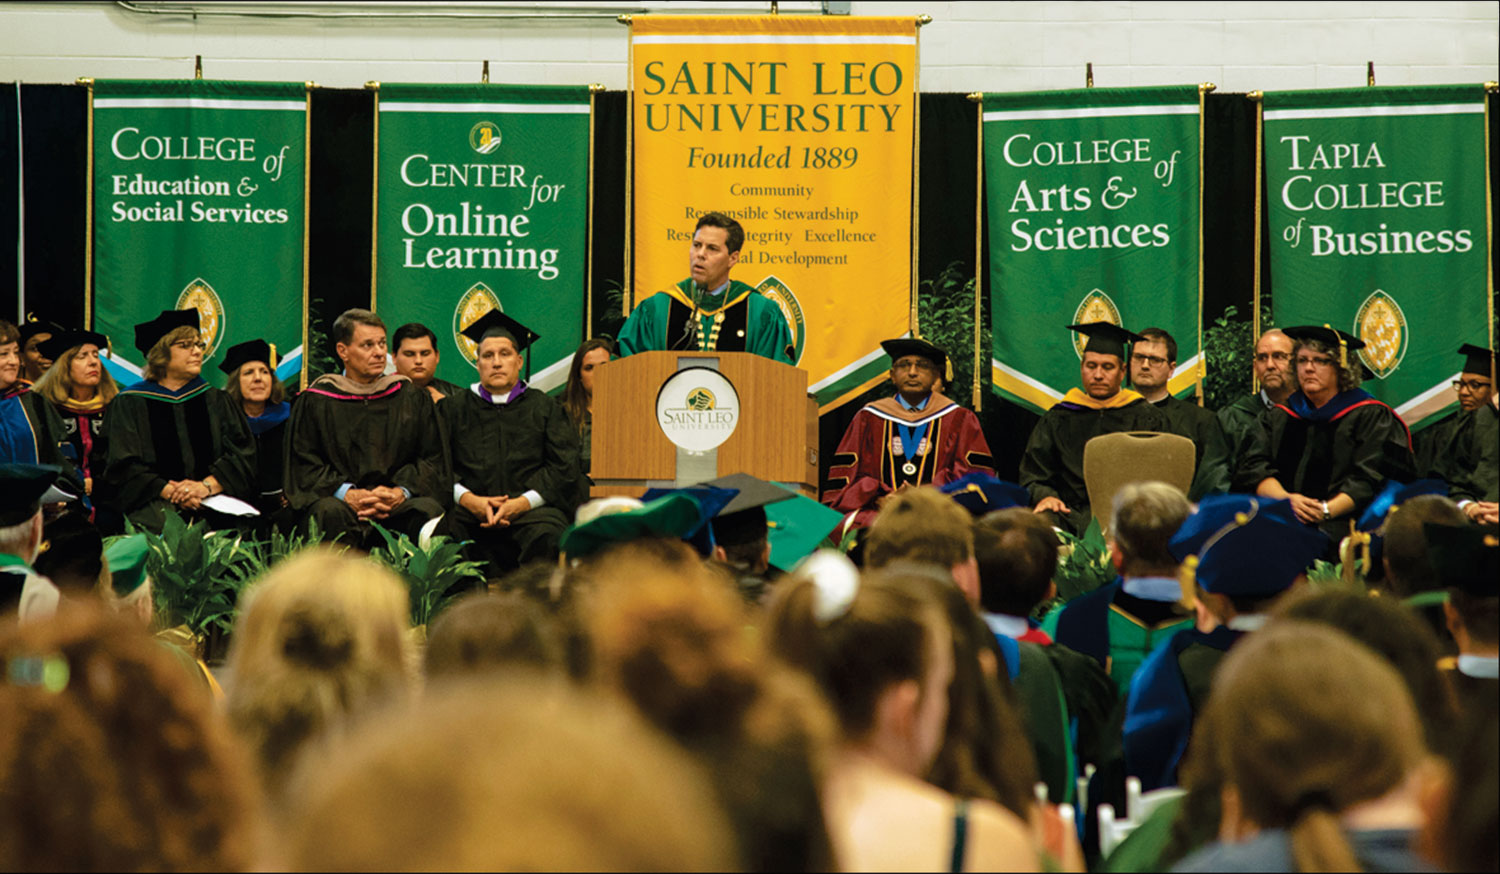 Saint Leo Welcomes Largest Incoming Class at University Campus at Convocation